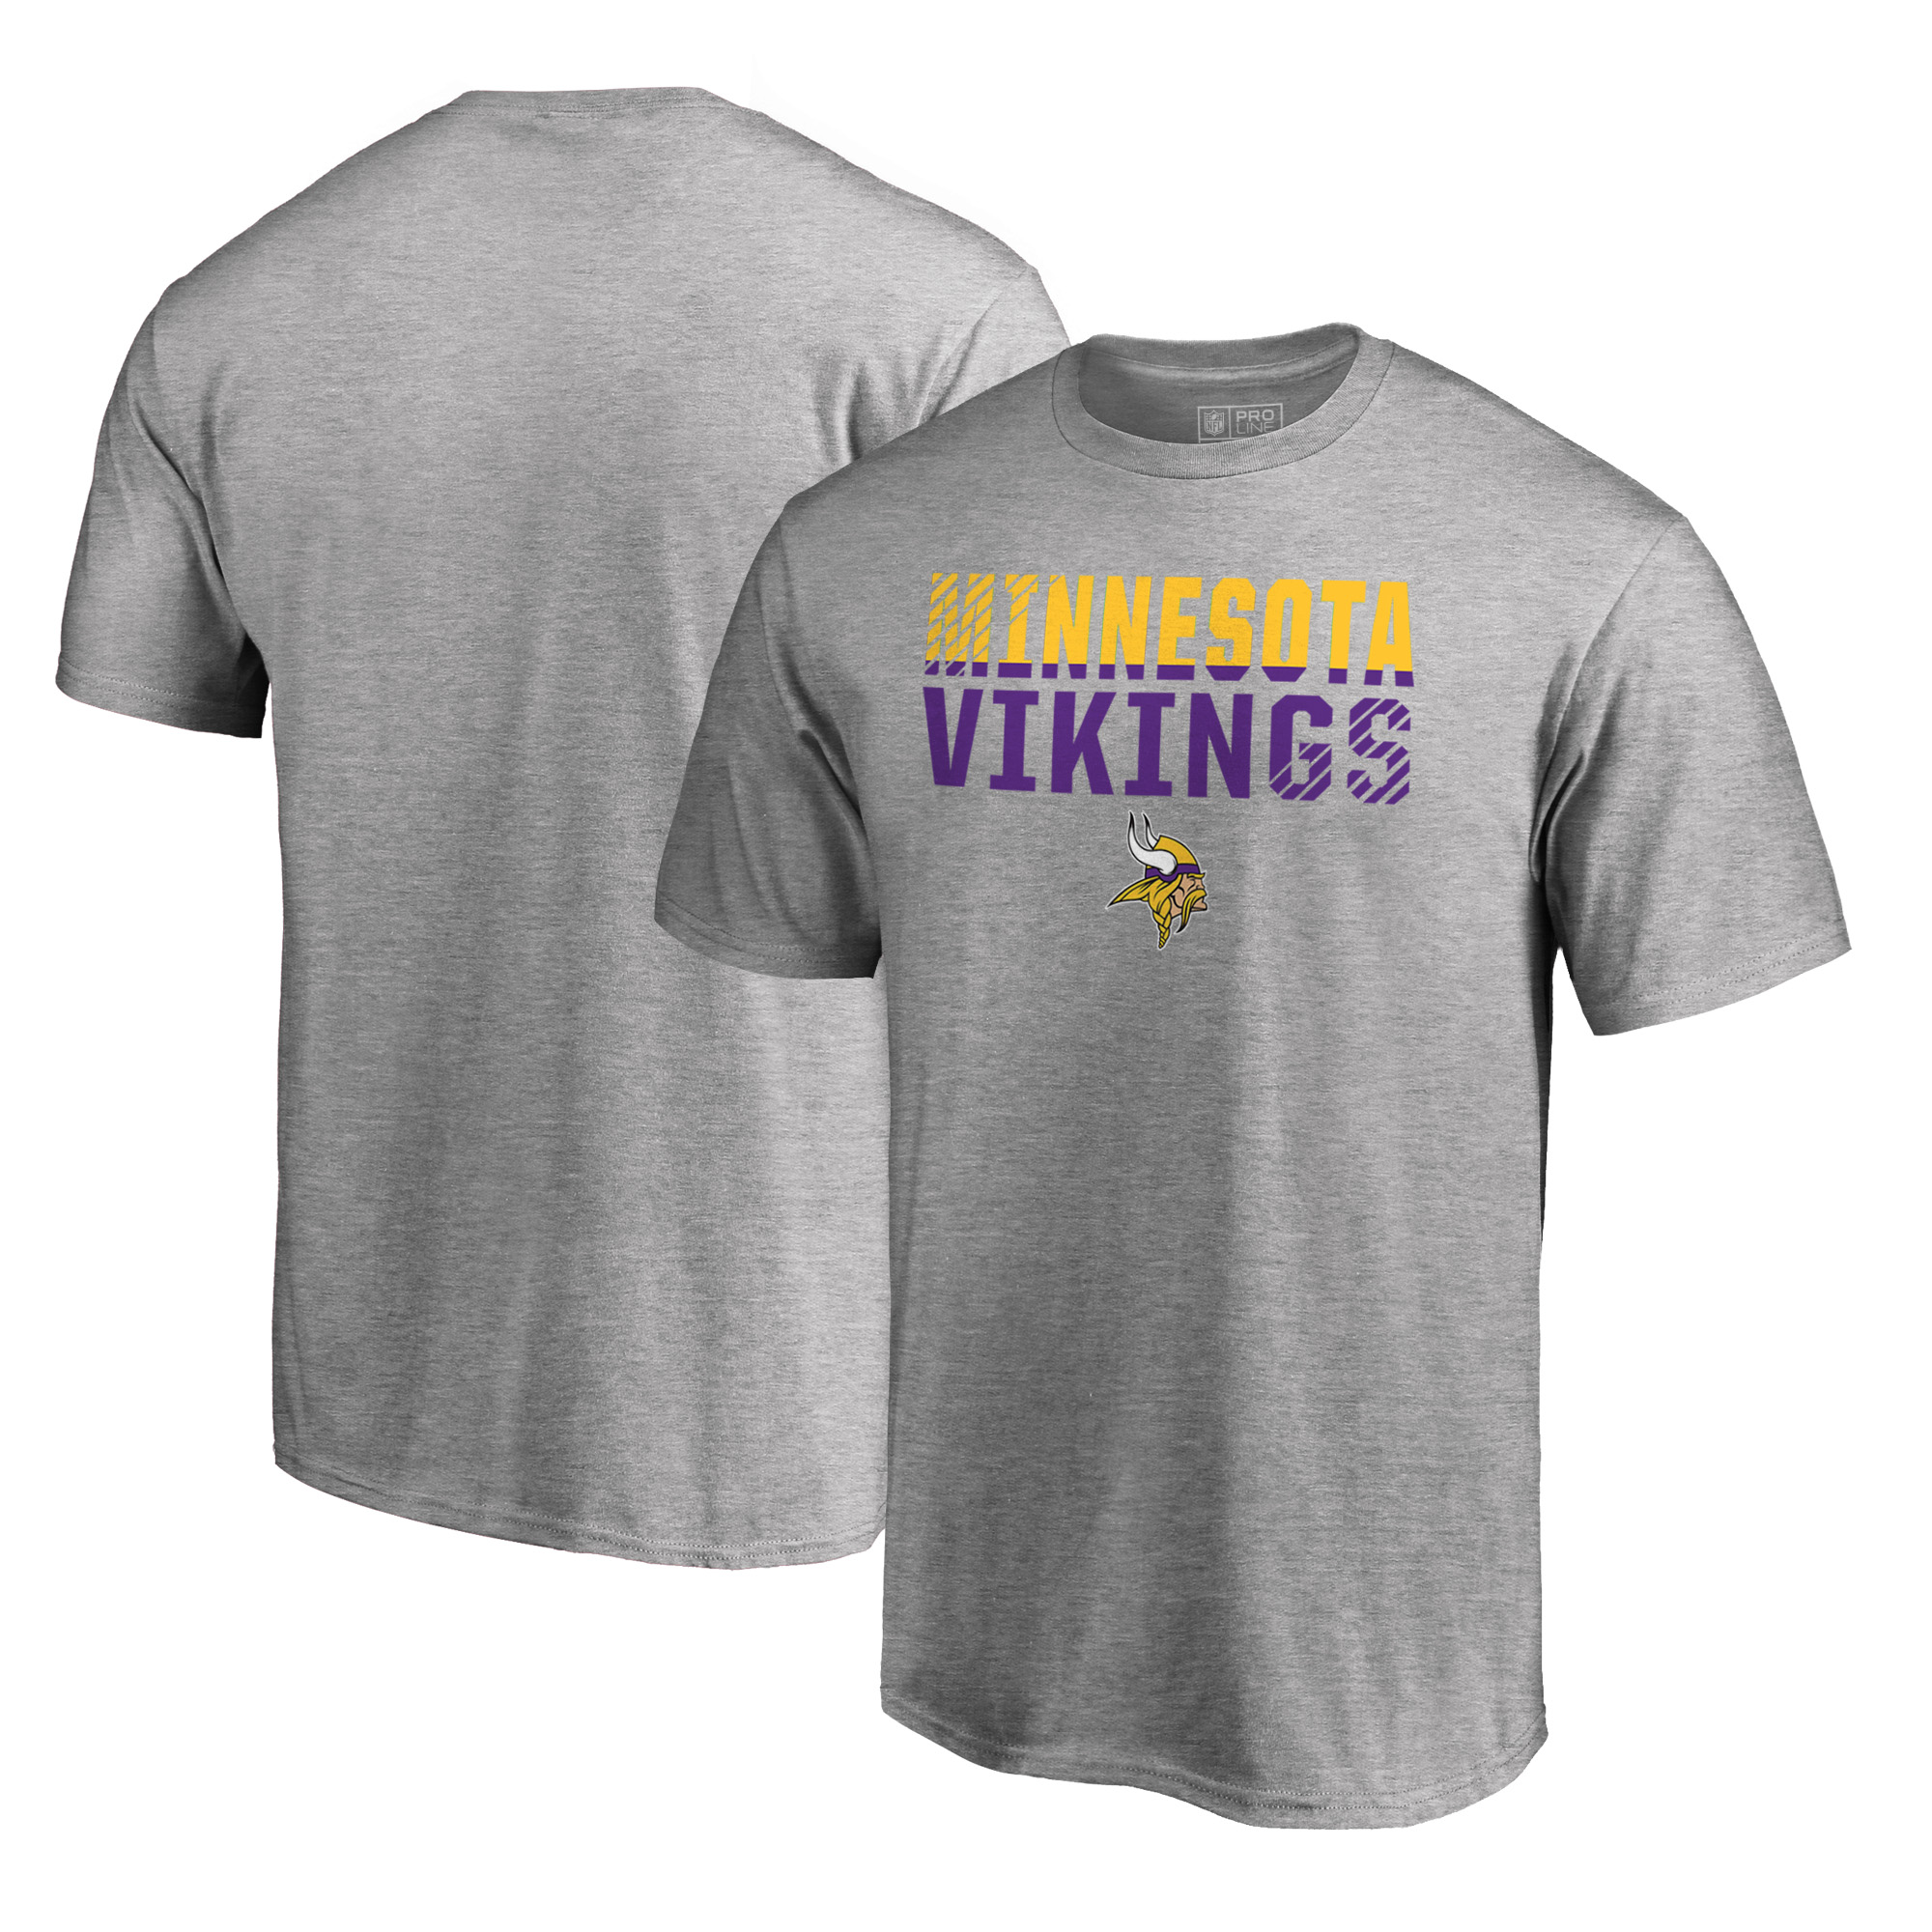 Minnesota Vikings NFL Pro Line by Fanatics Branded Iconic Collection Fade Out T-Shirt - Ash